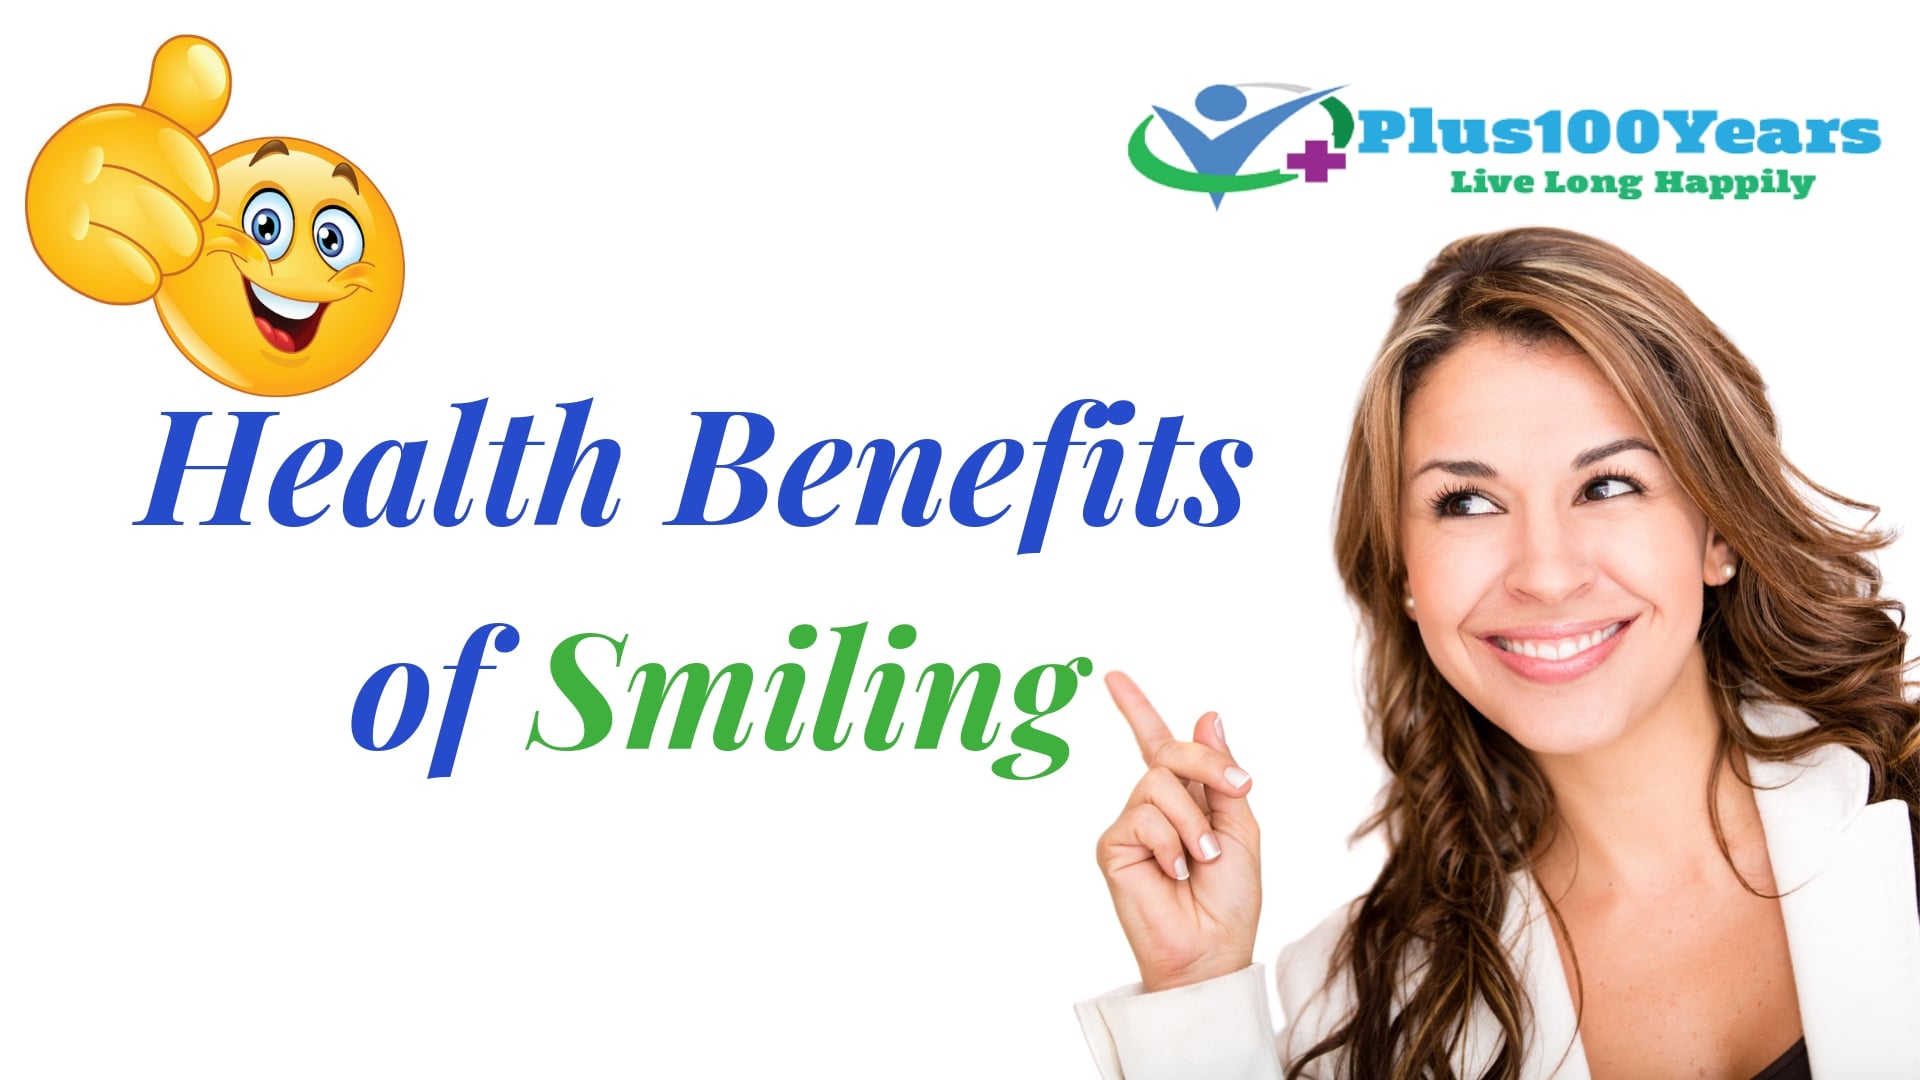 Health Benefits of Smiling